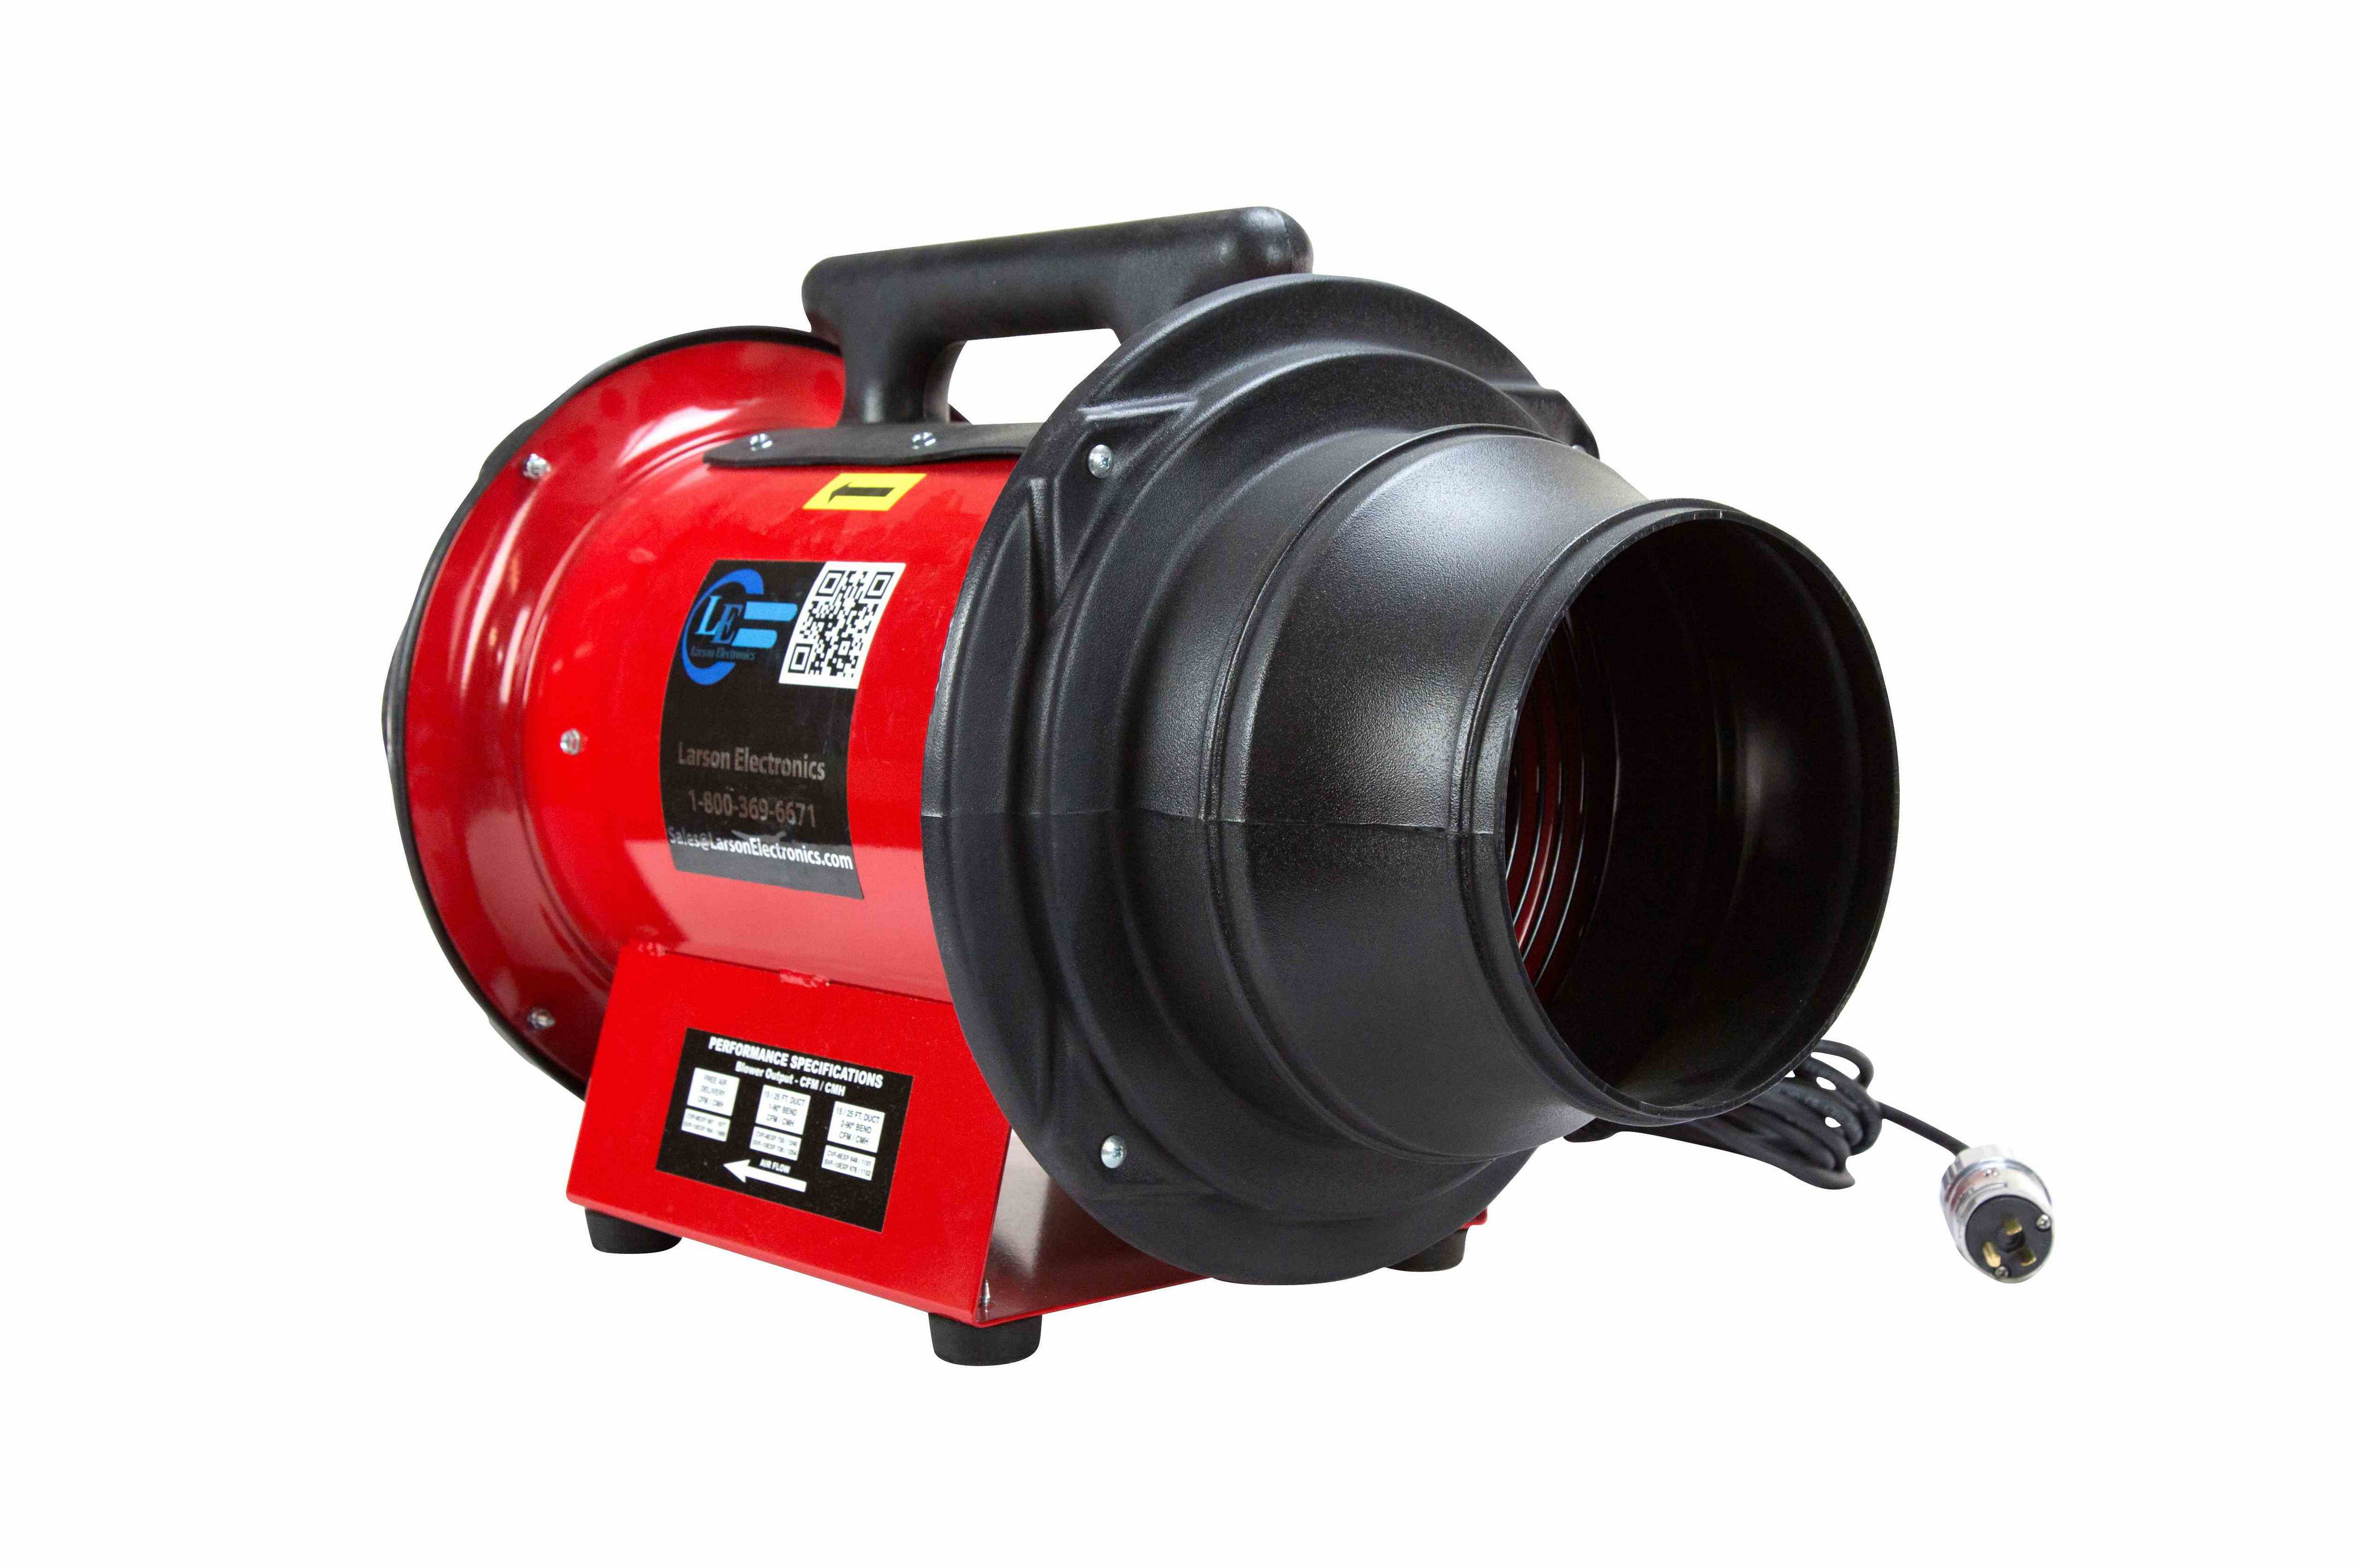 Explosion Proof Blowers : Explosion proof electric fan blower c d hp engine